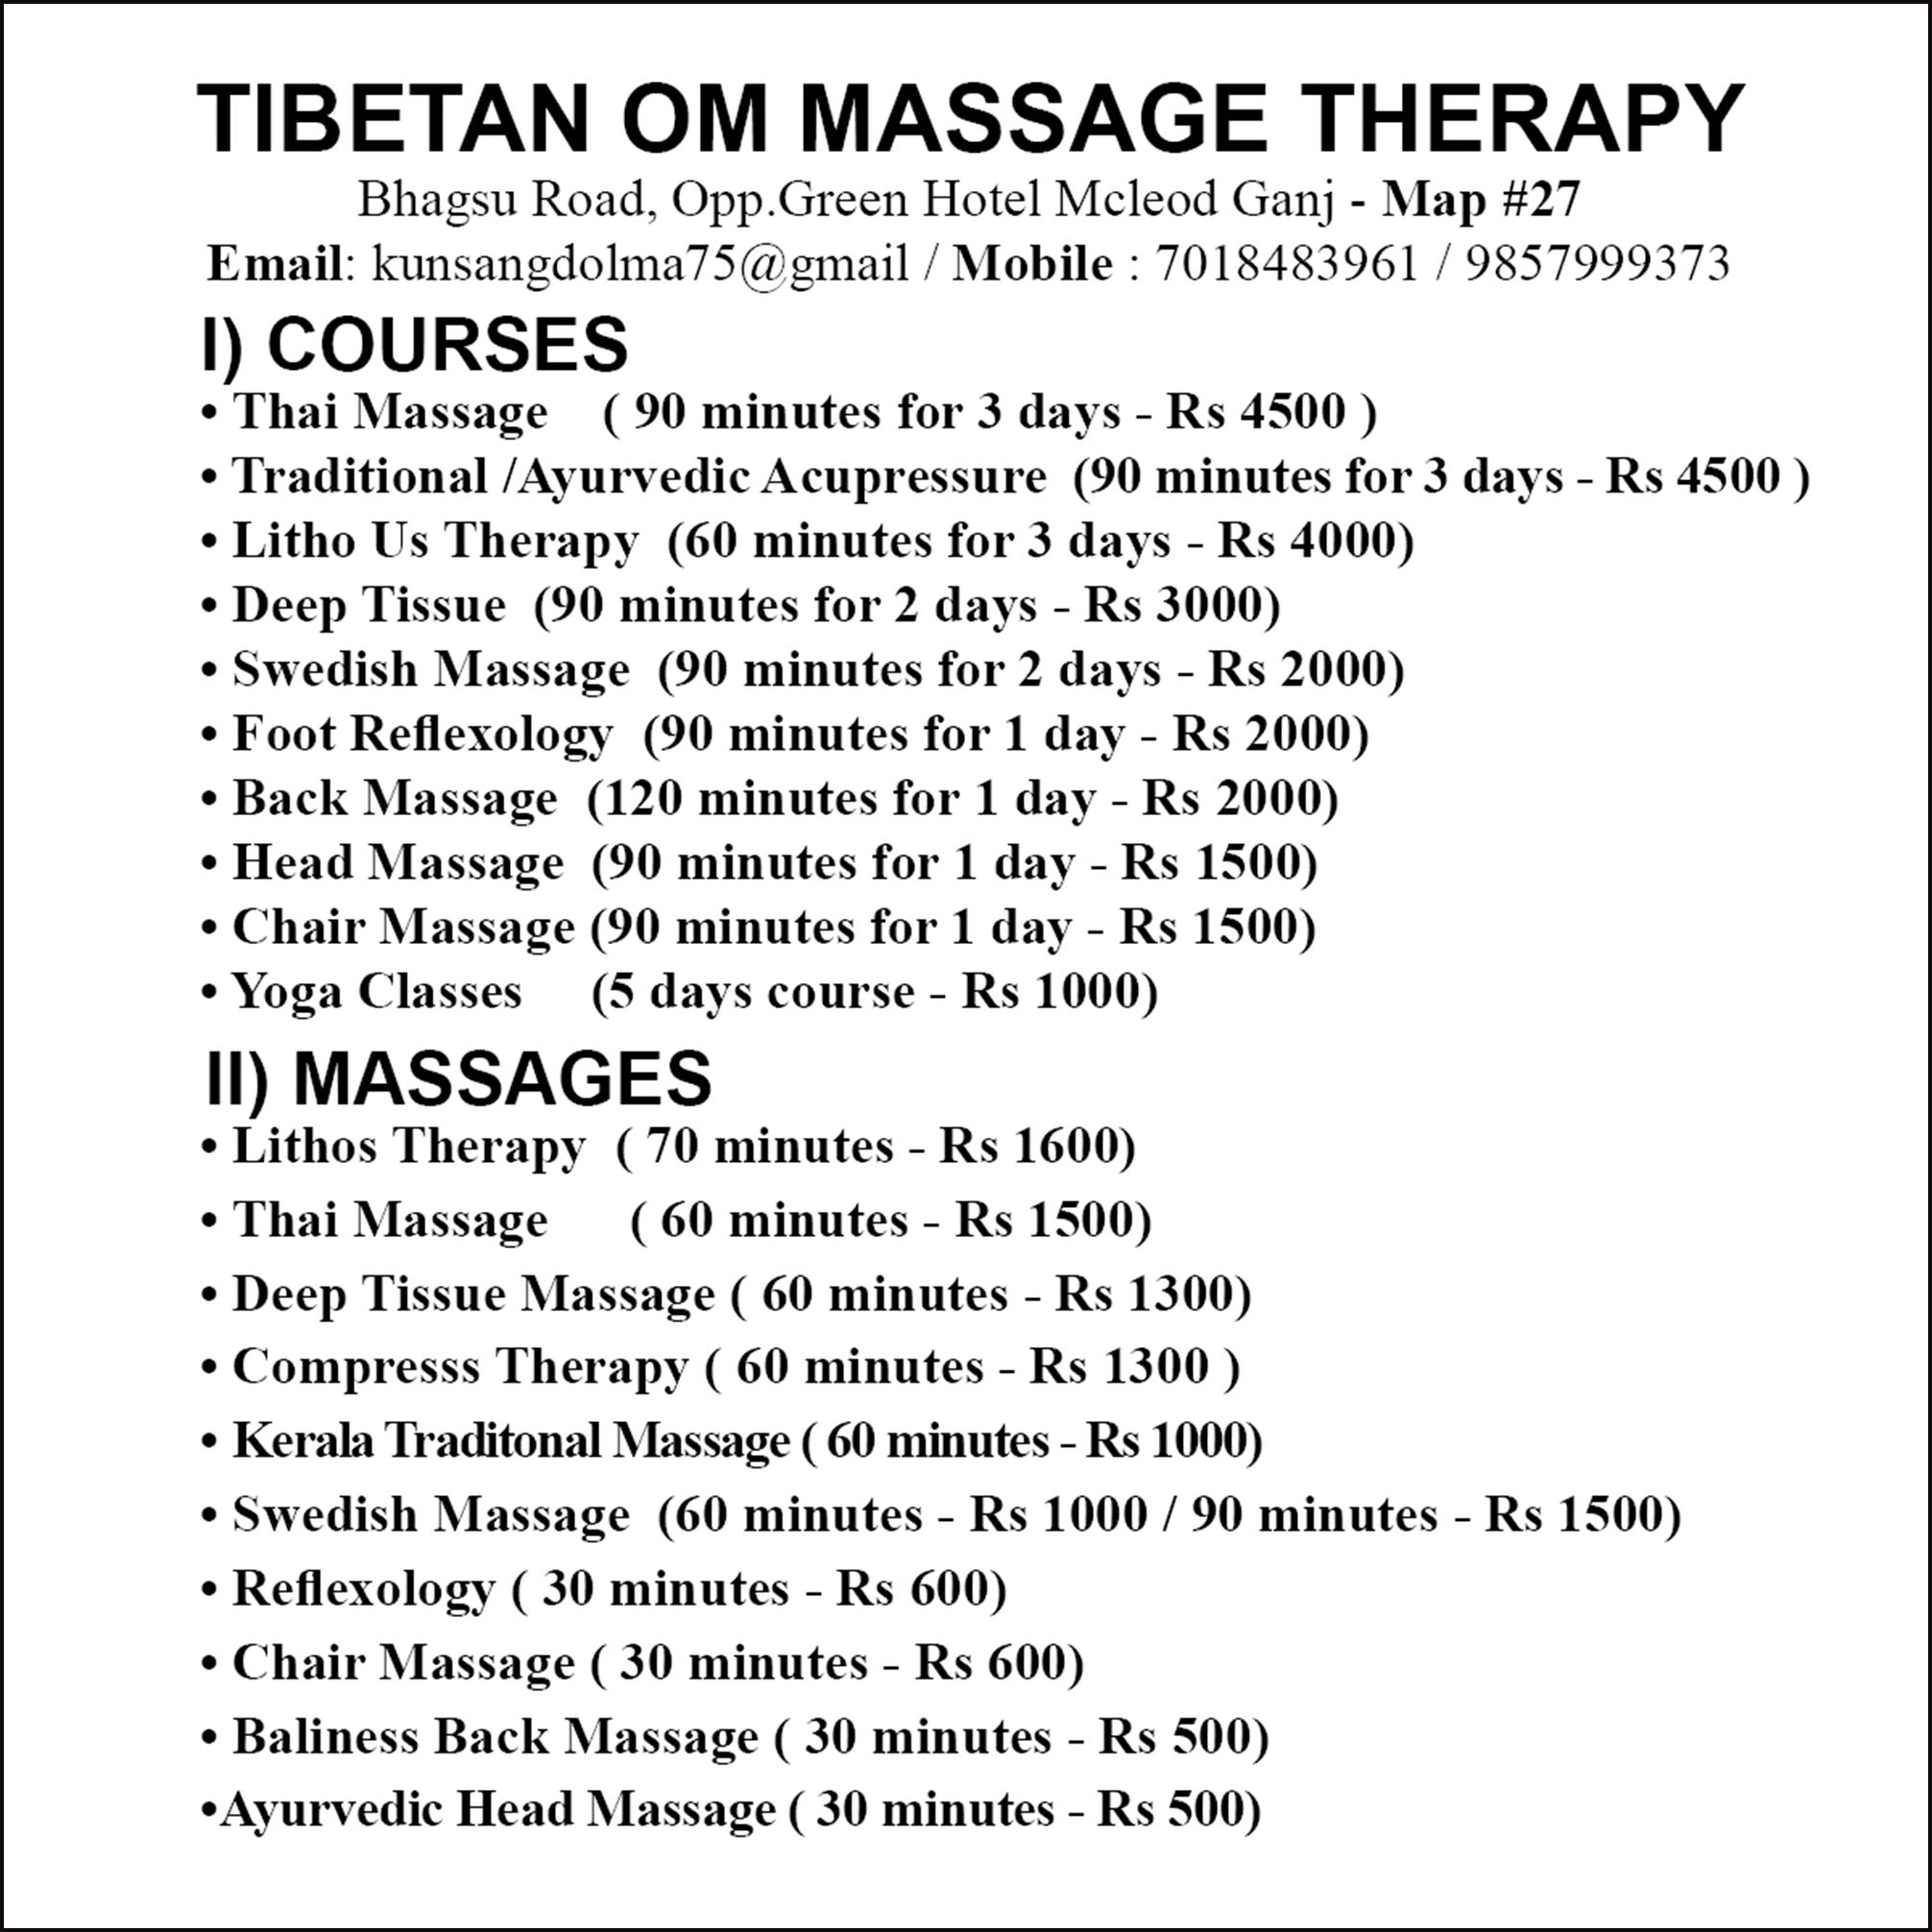 Tibetan Om Massage Therapy